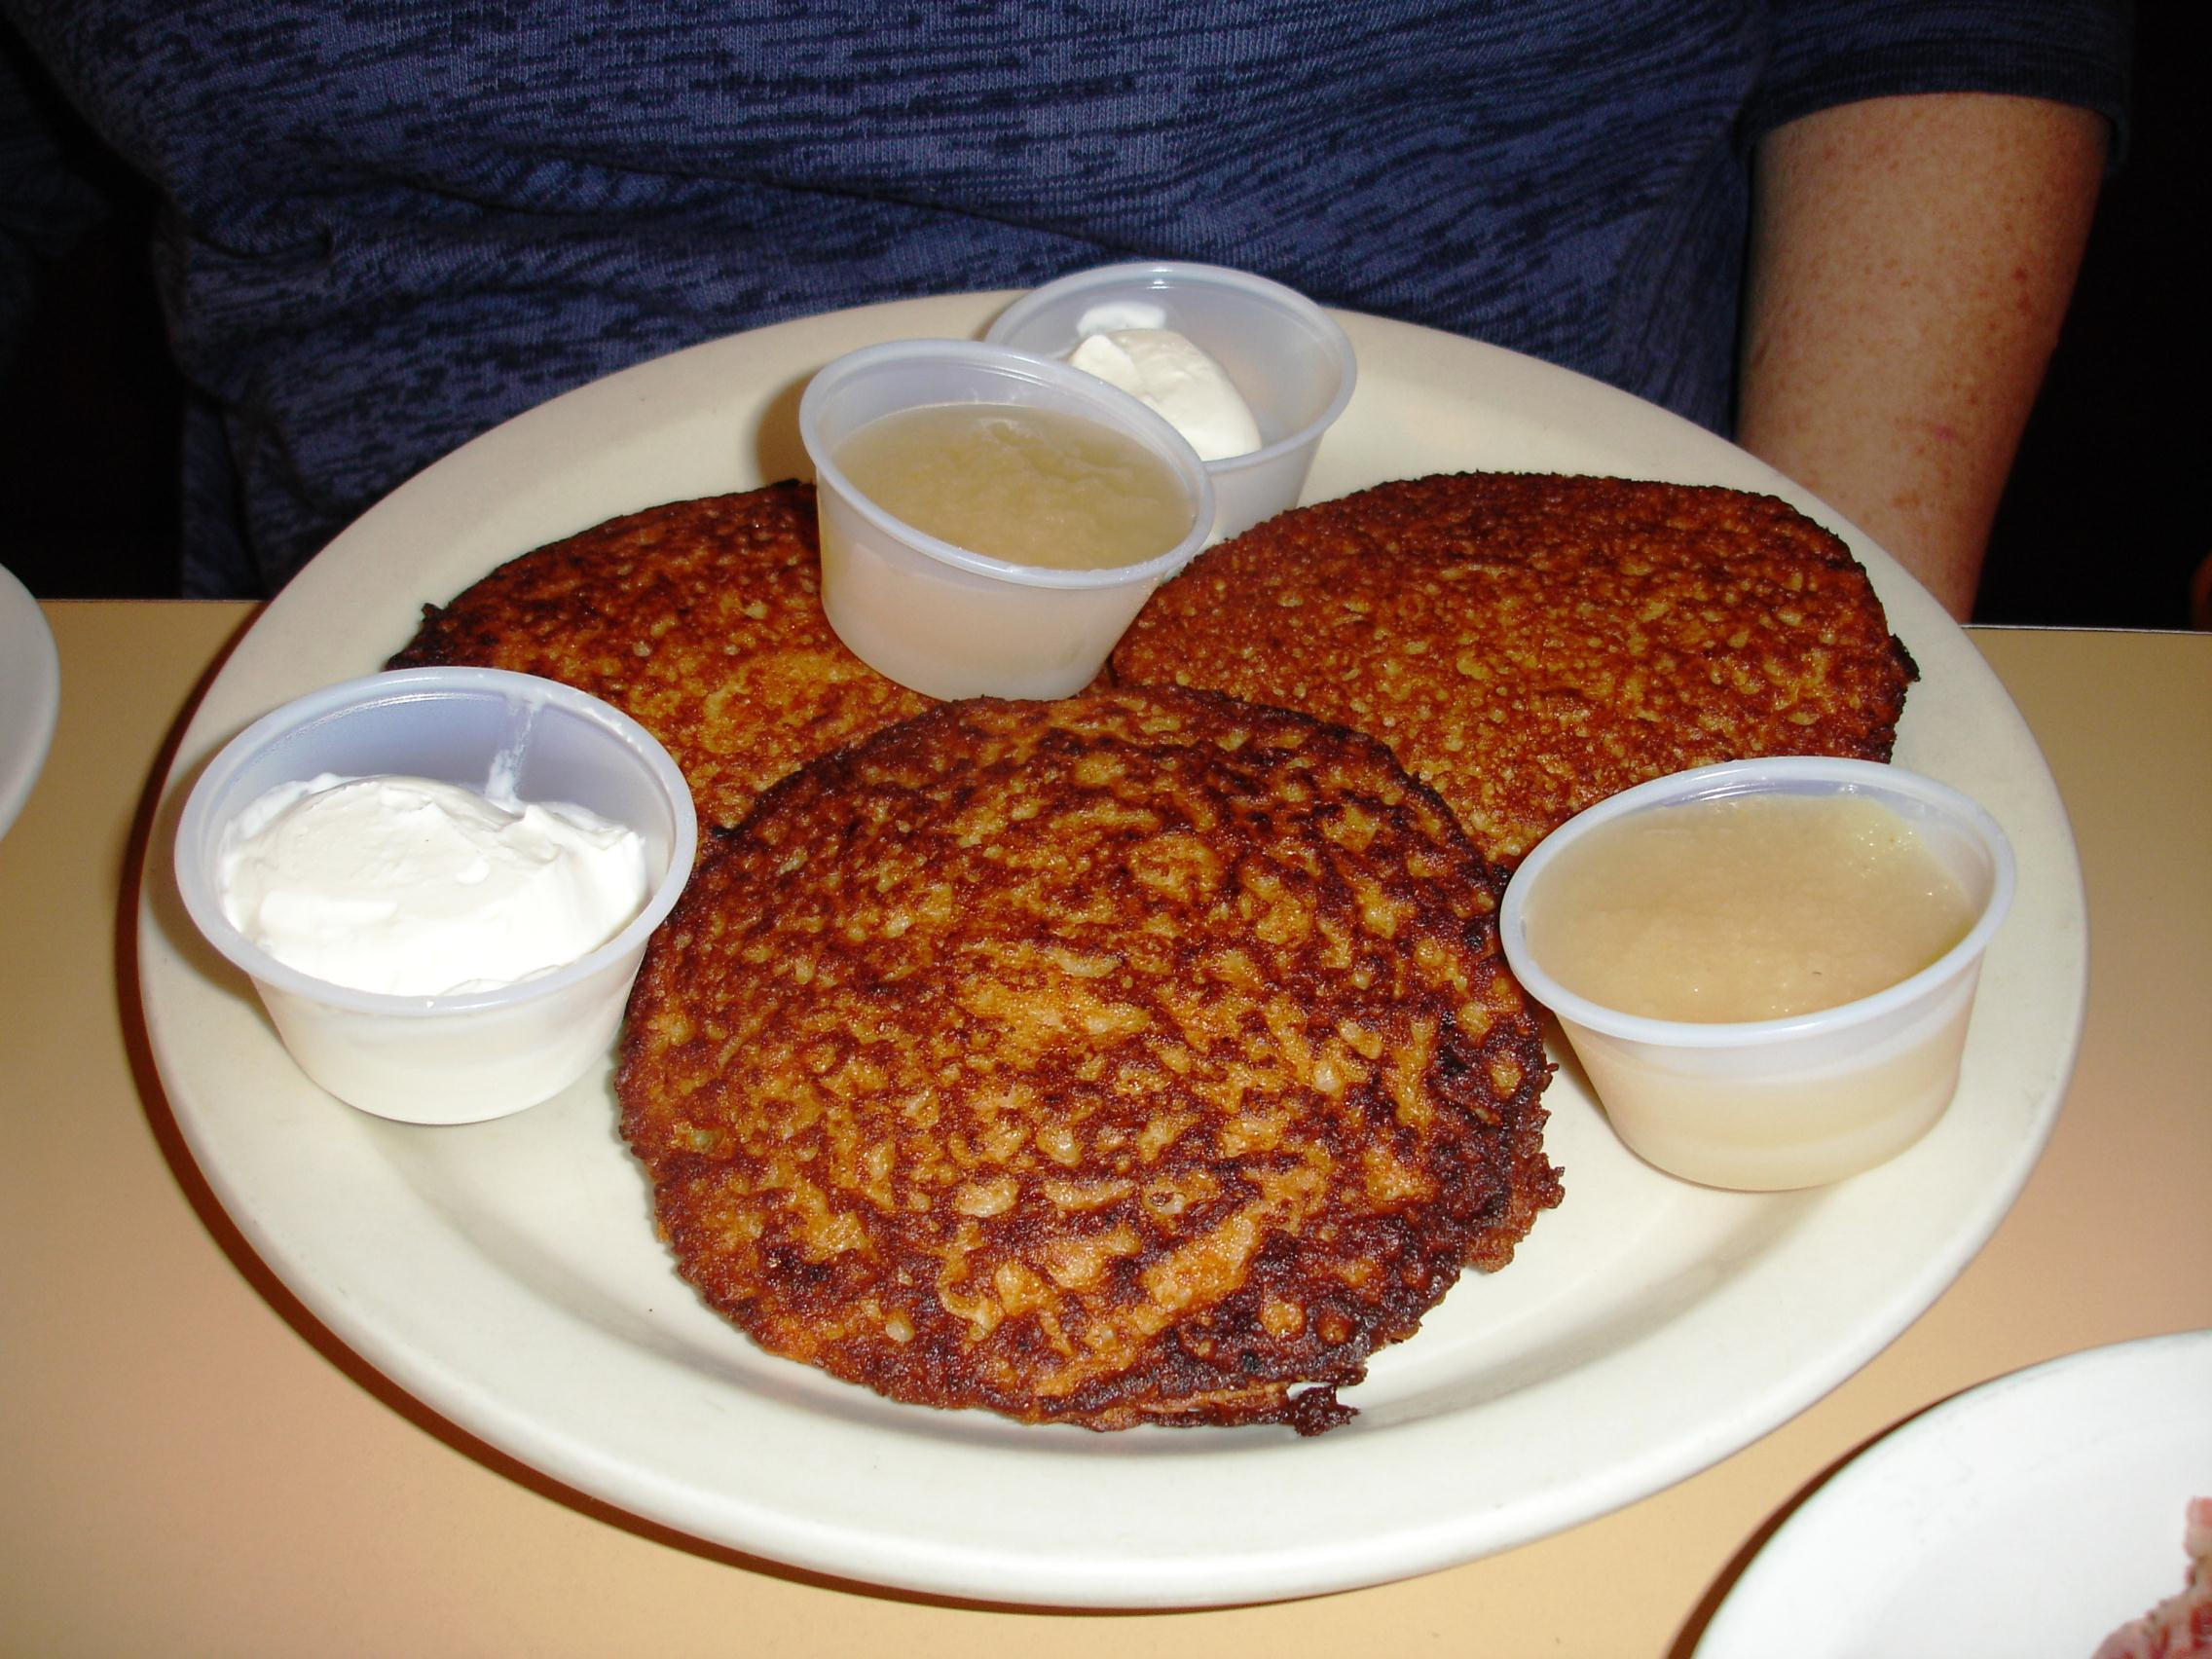 Potato pancakes are crisp, moist within, and will please fans of the batter-style of latkes.